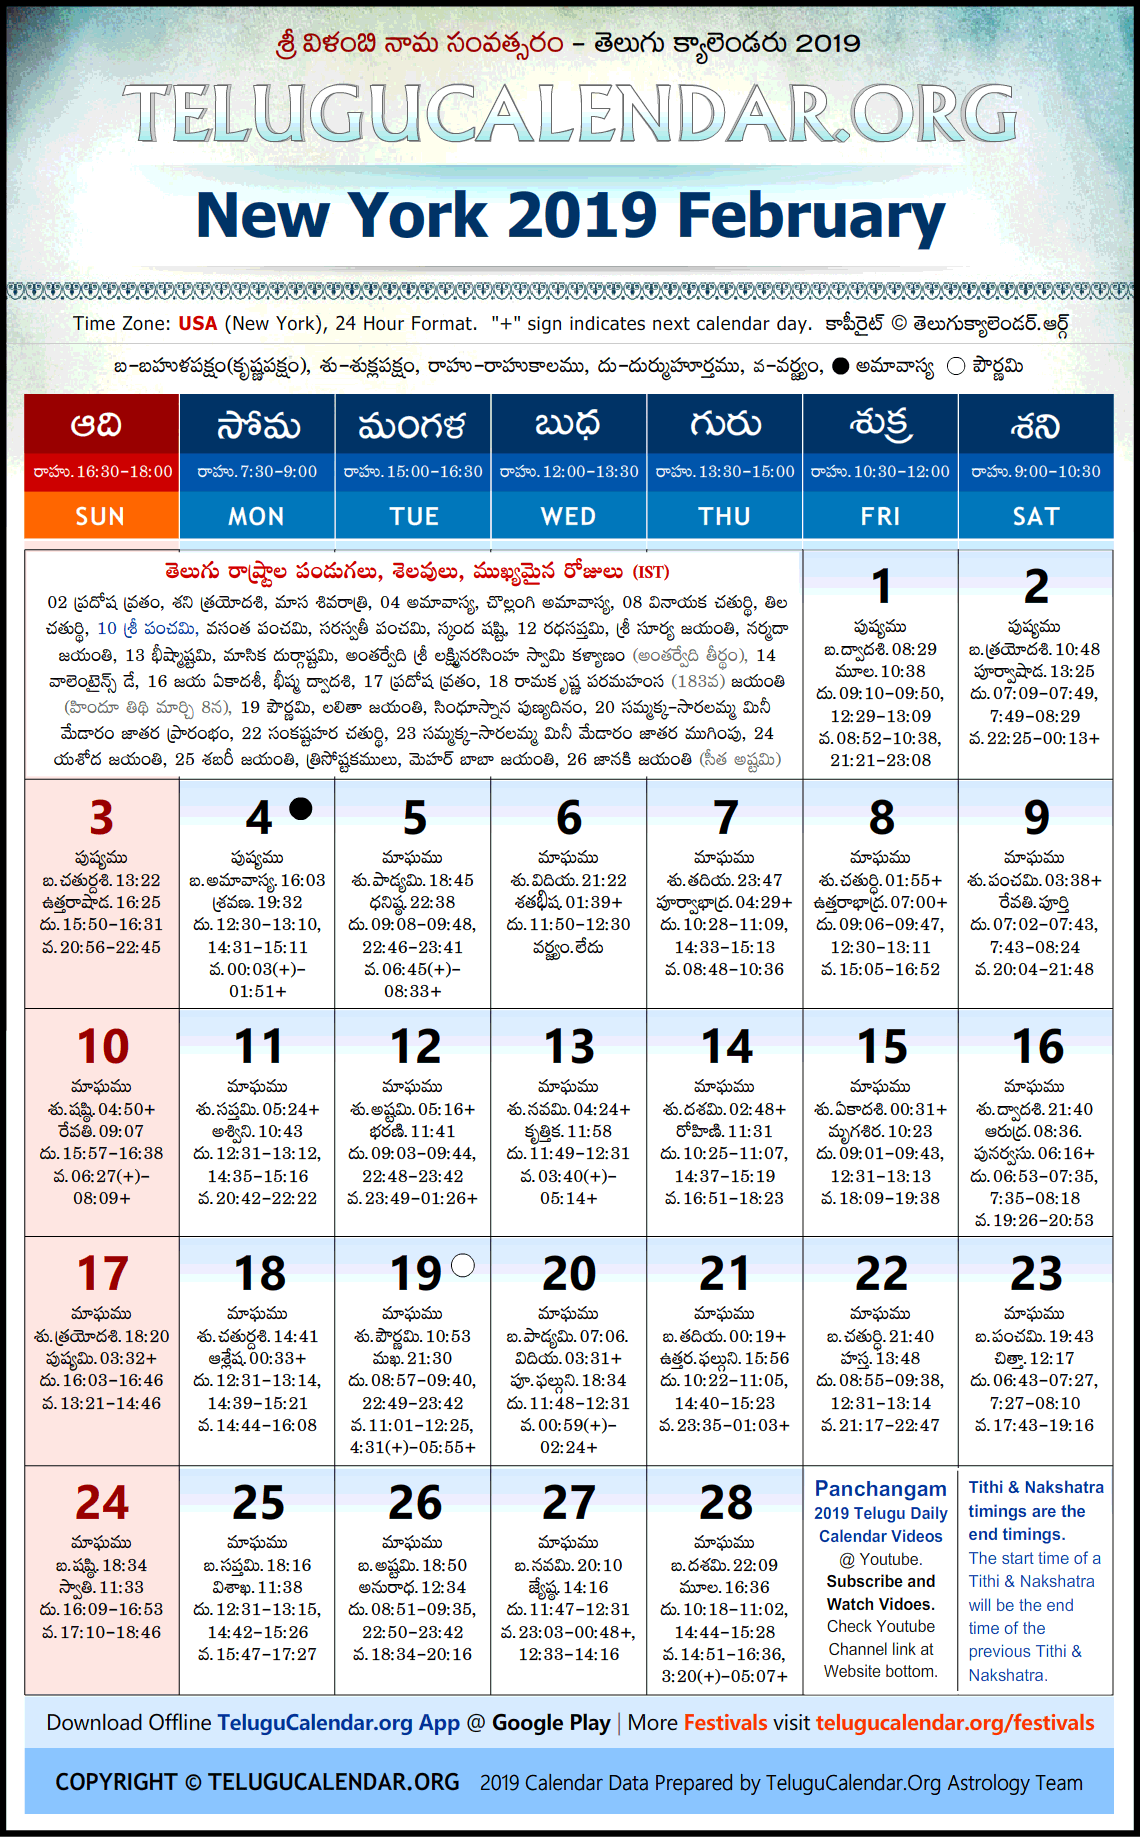 New York Telugu Calendar 2019 February New York | 2019 February Telugu Calendar High Resolution